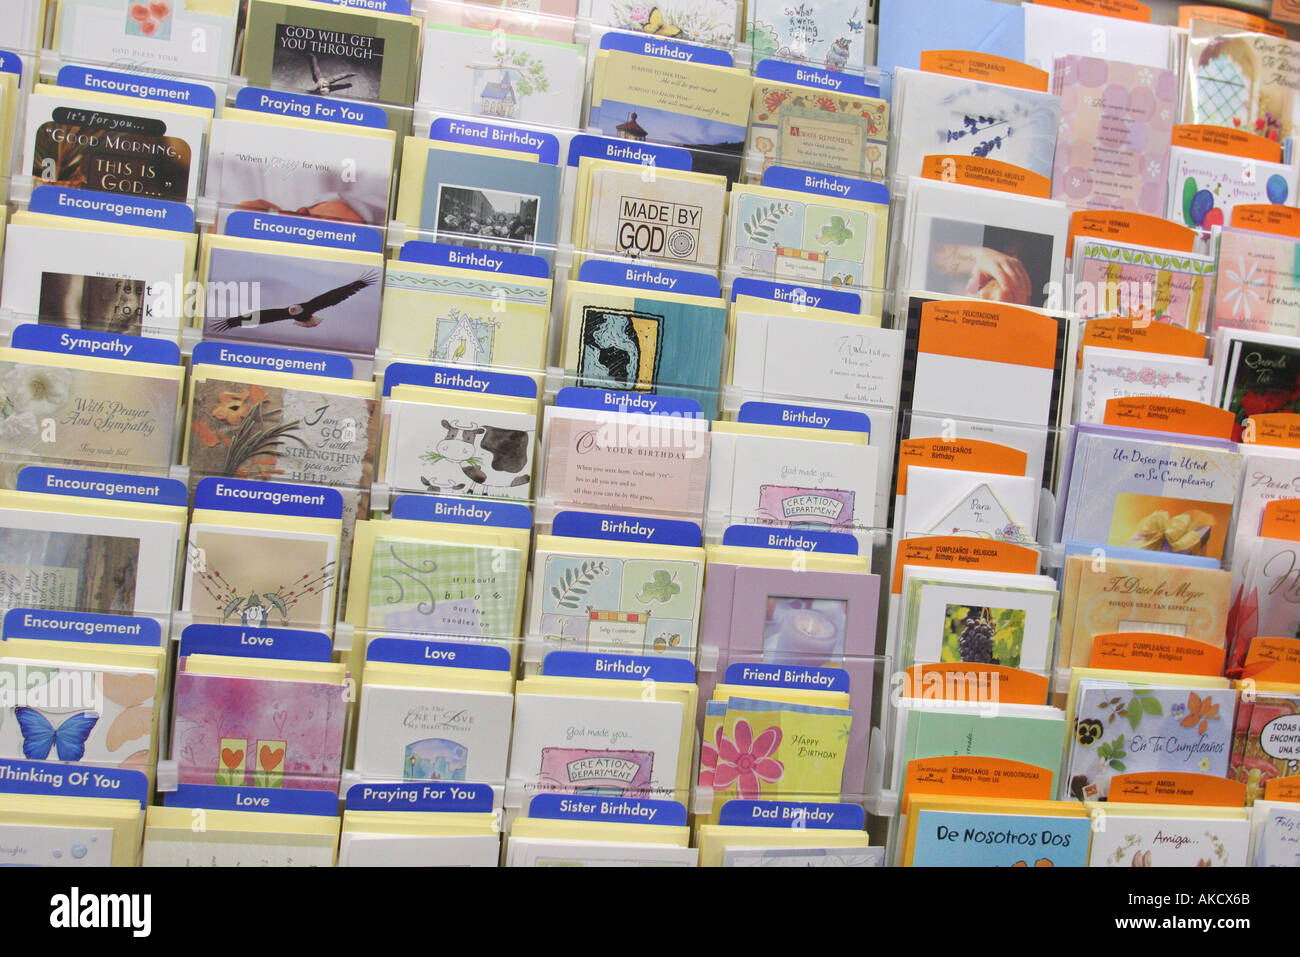 Miami Beach Florida CVS Pharmacy Greeting Cards Retail Display